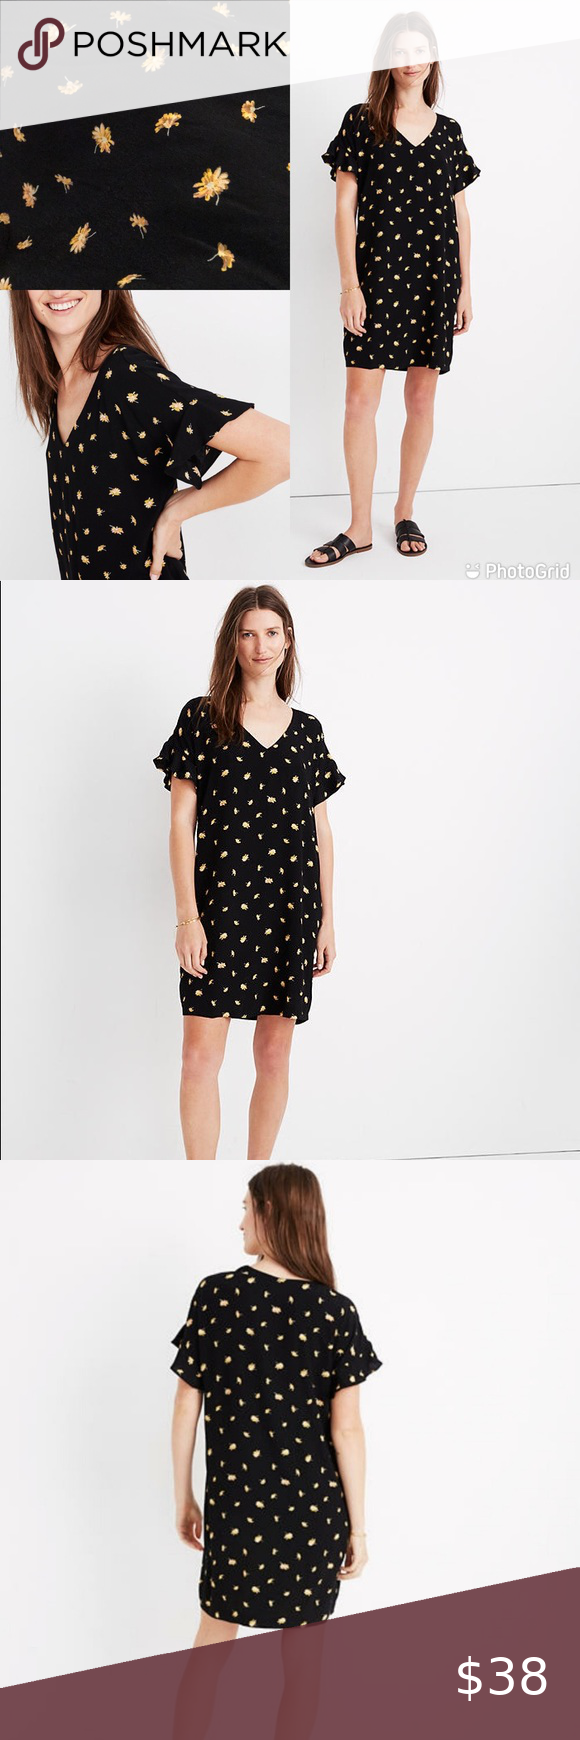 Nwt Madewell Black Dress With Yellow Flowers Black Dress Colorful Dresses Dresses [ 1740 x 580 Pixel ]